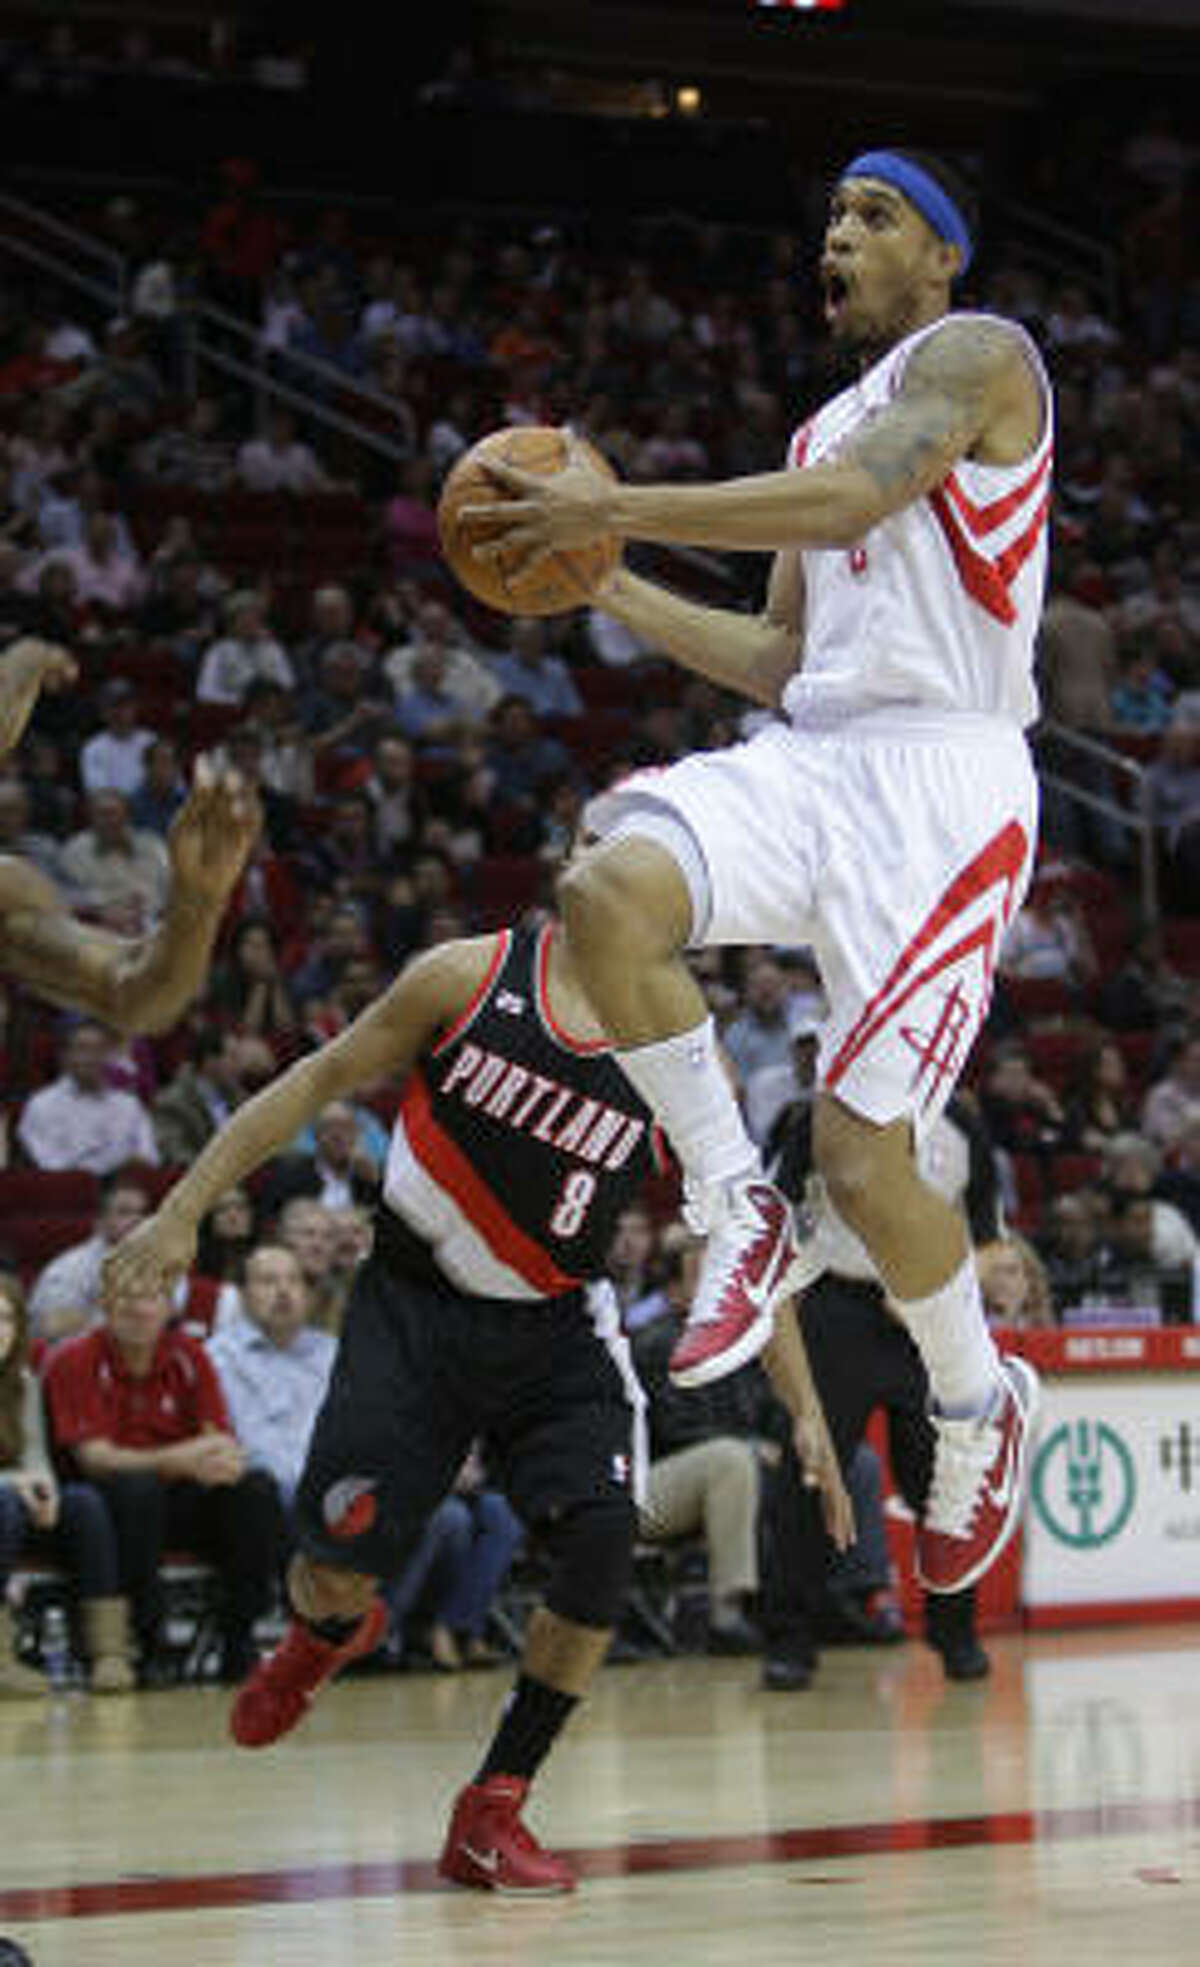 Rockets guard Courtney Lee, right, flies up to the basket during the first half.